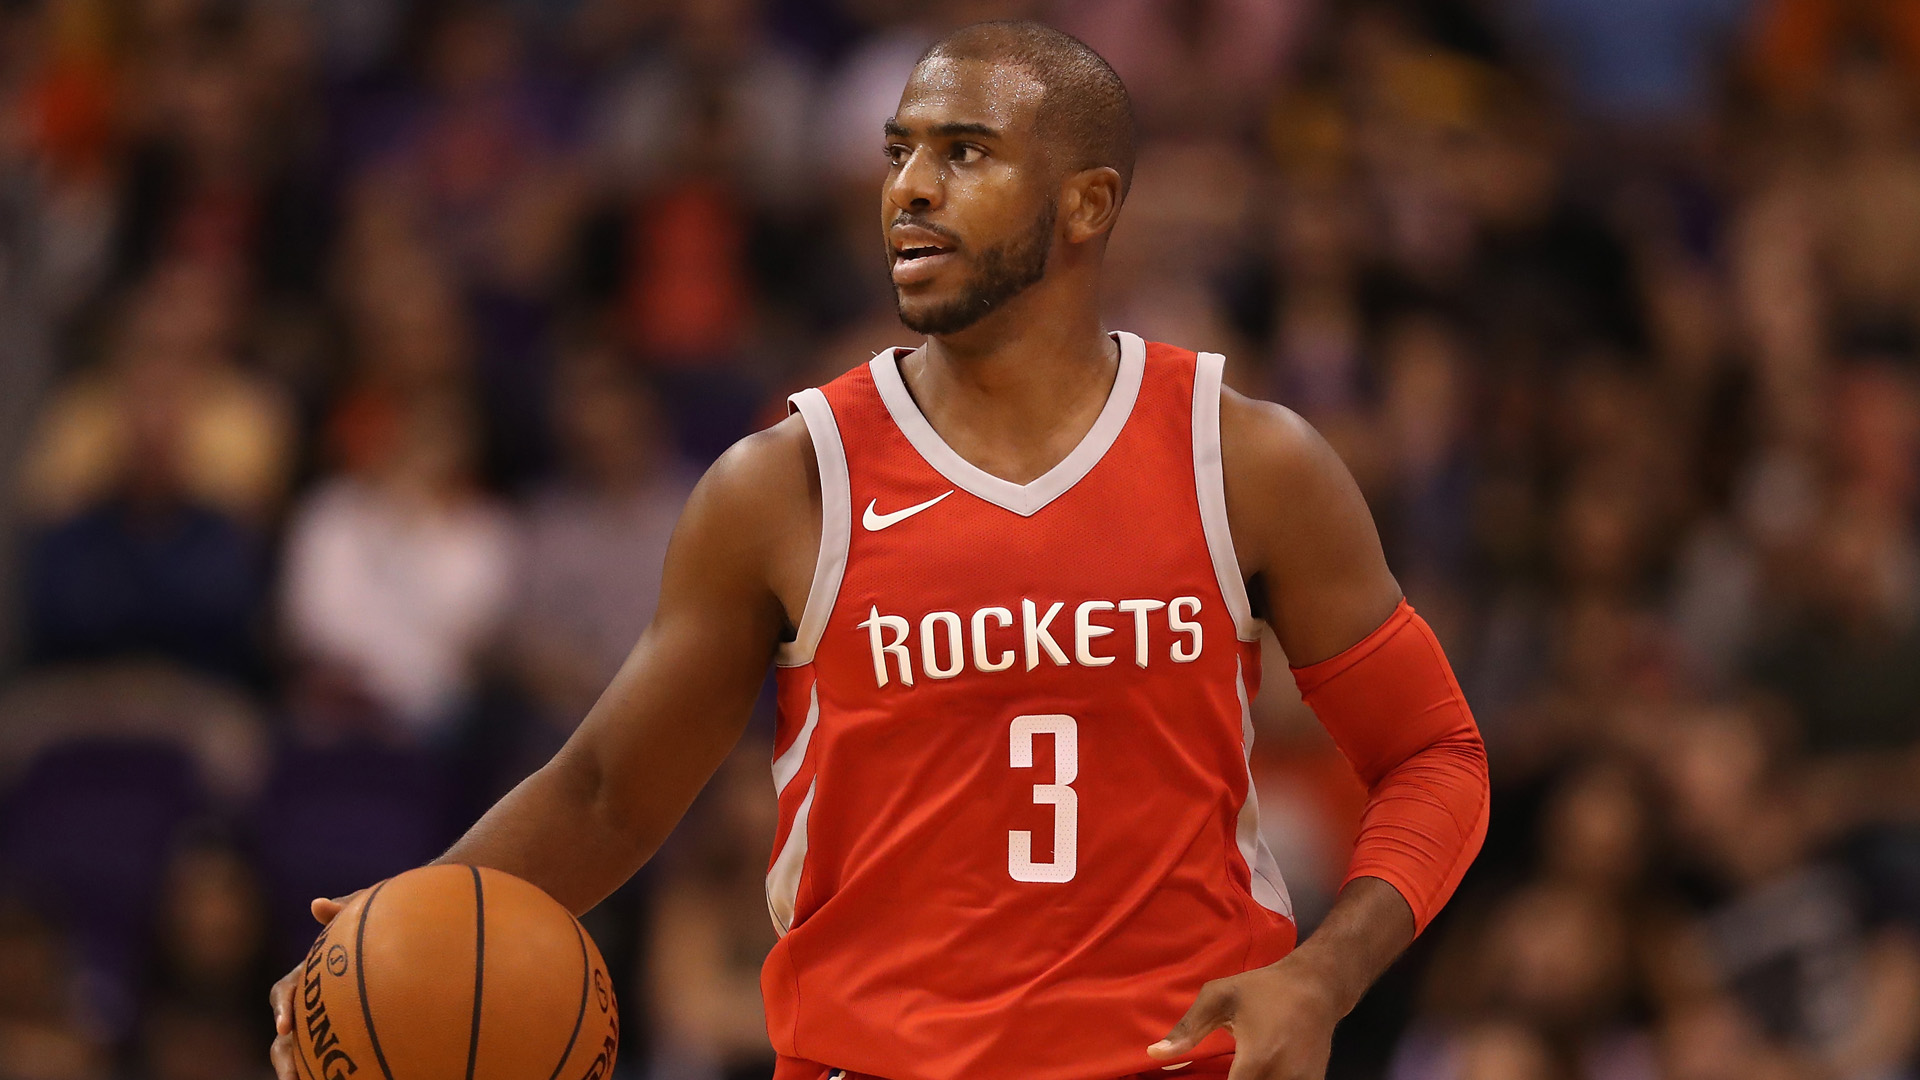 NBA free agency rumors: Chris Paul will re-sign with Rockets